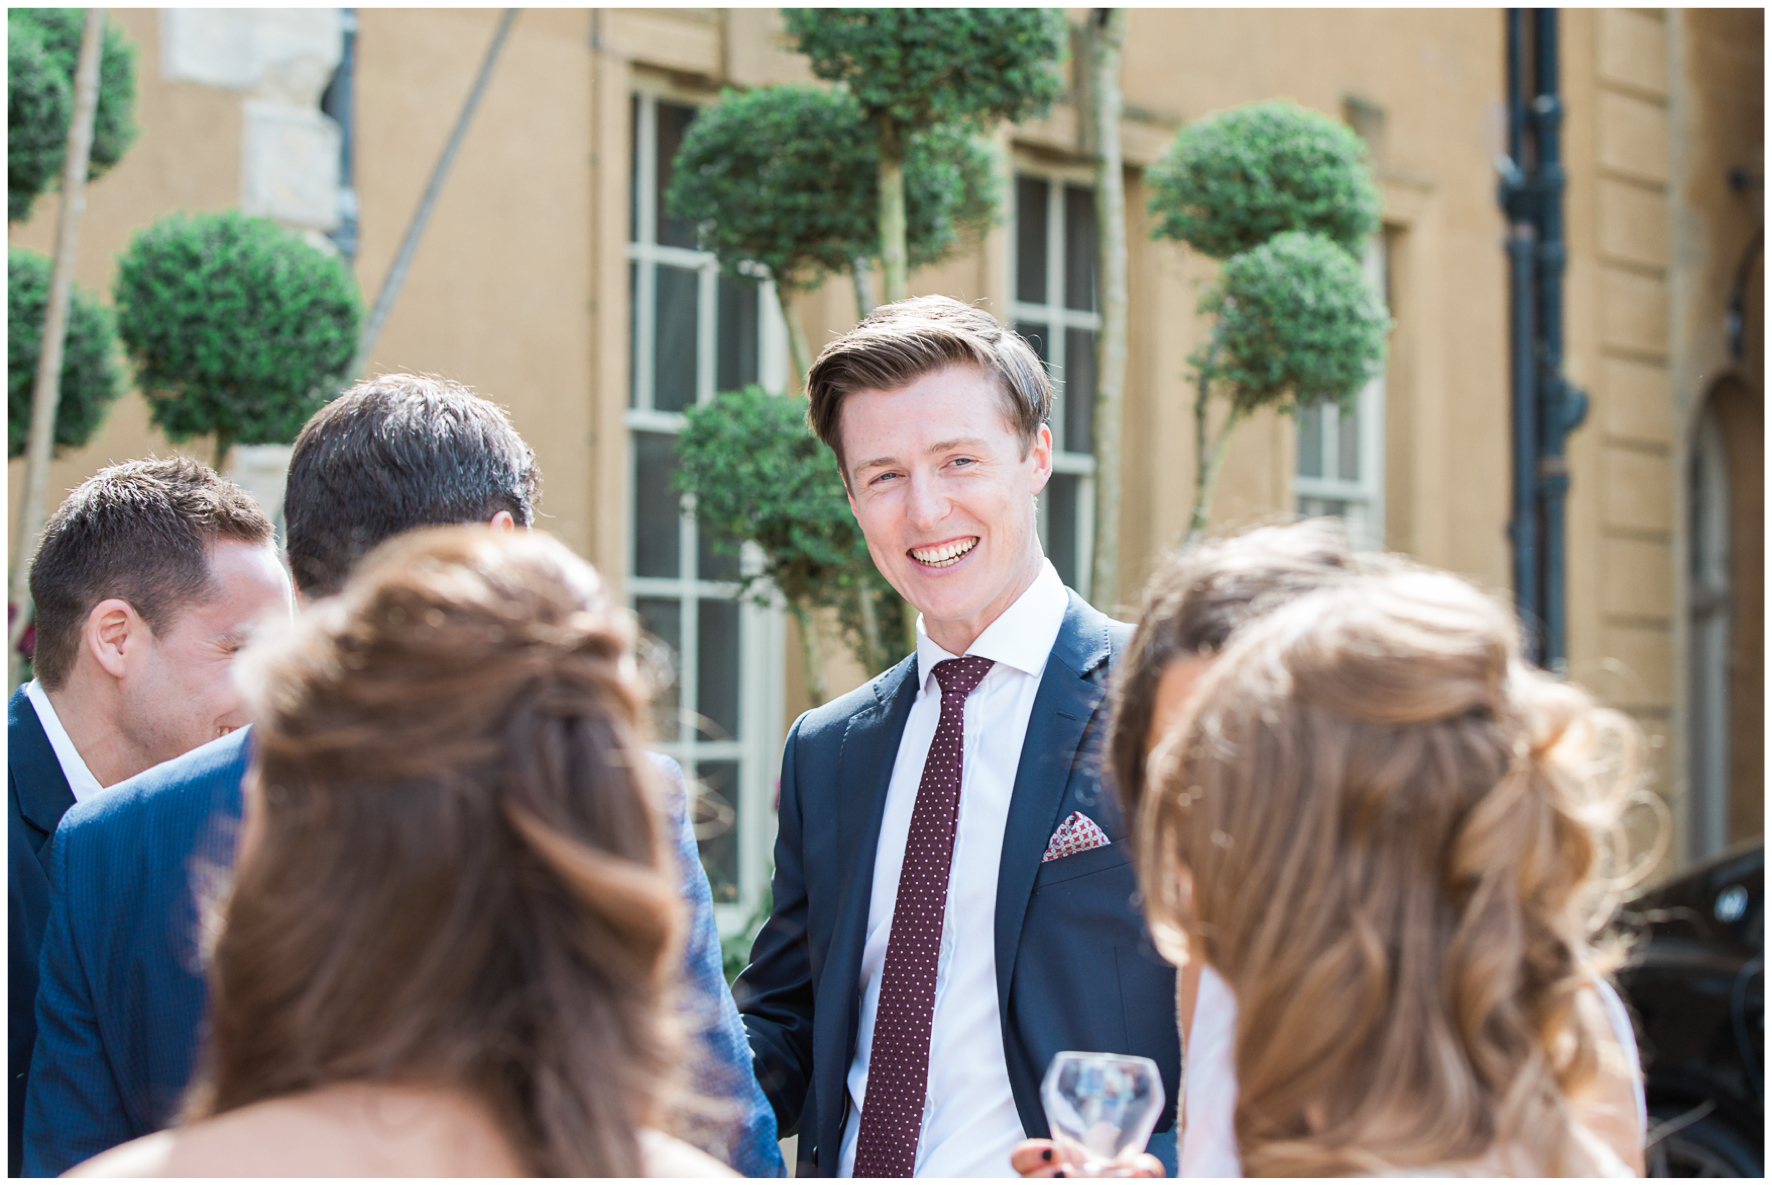 Lucy Davenport Photography, Aynhoe Park, Oxfordshire, real wedding, Rock My Wedding, drinks reception